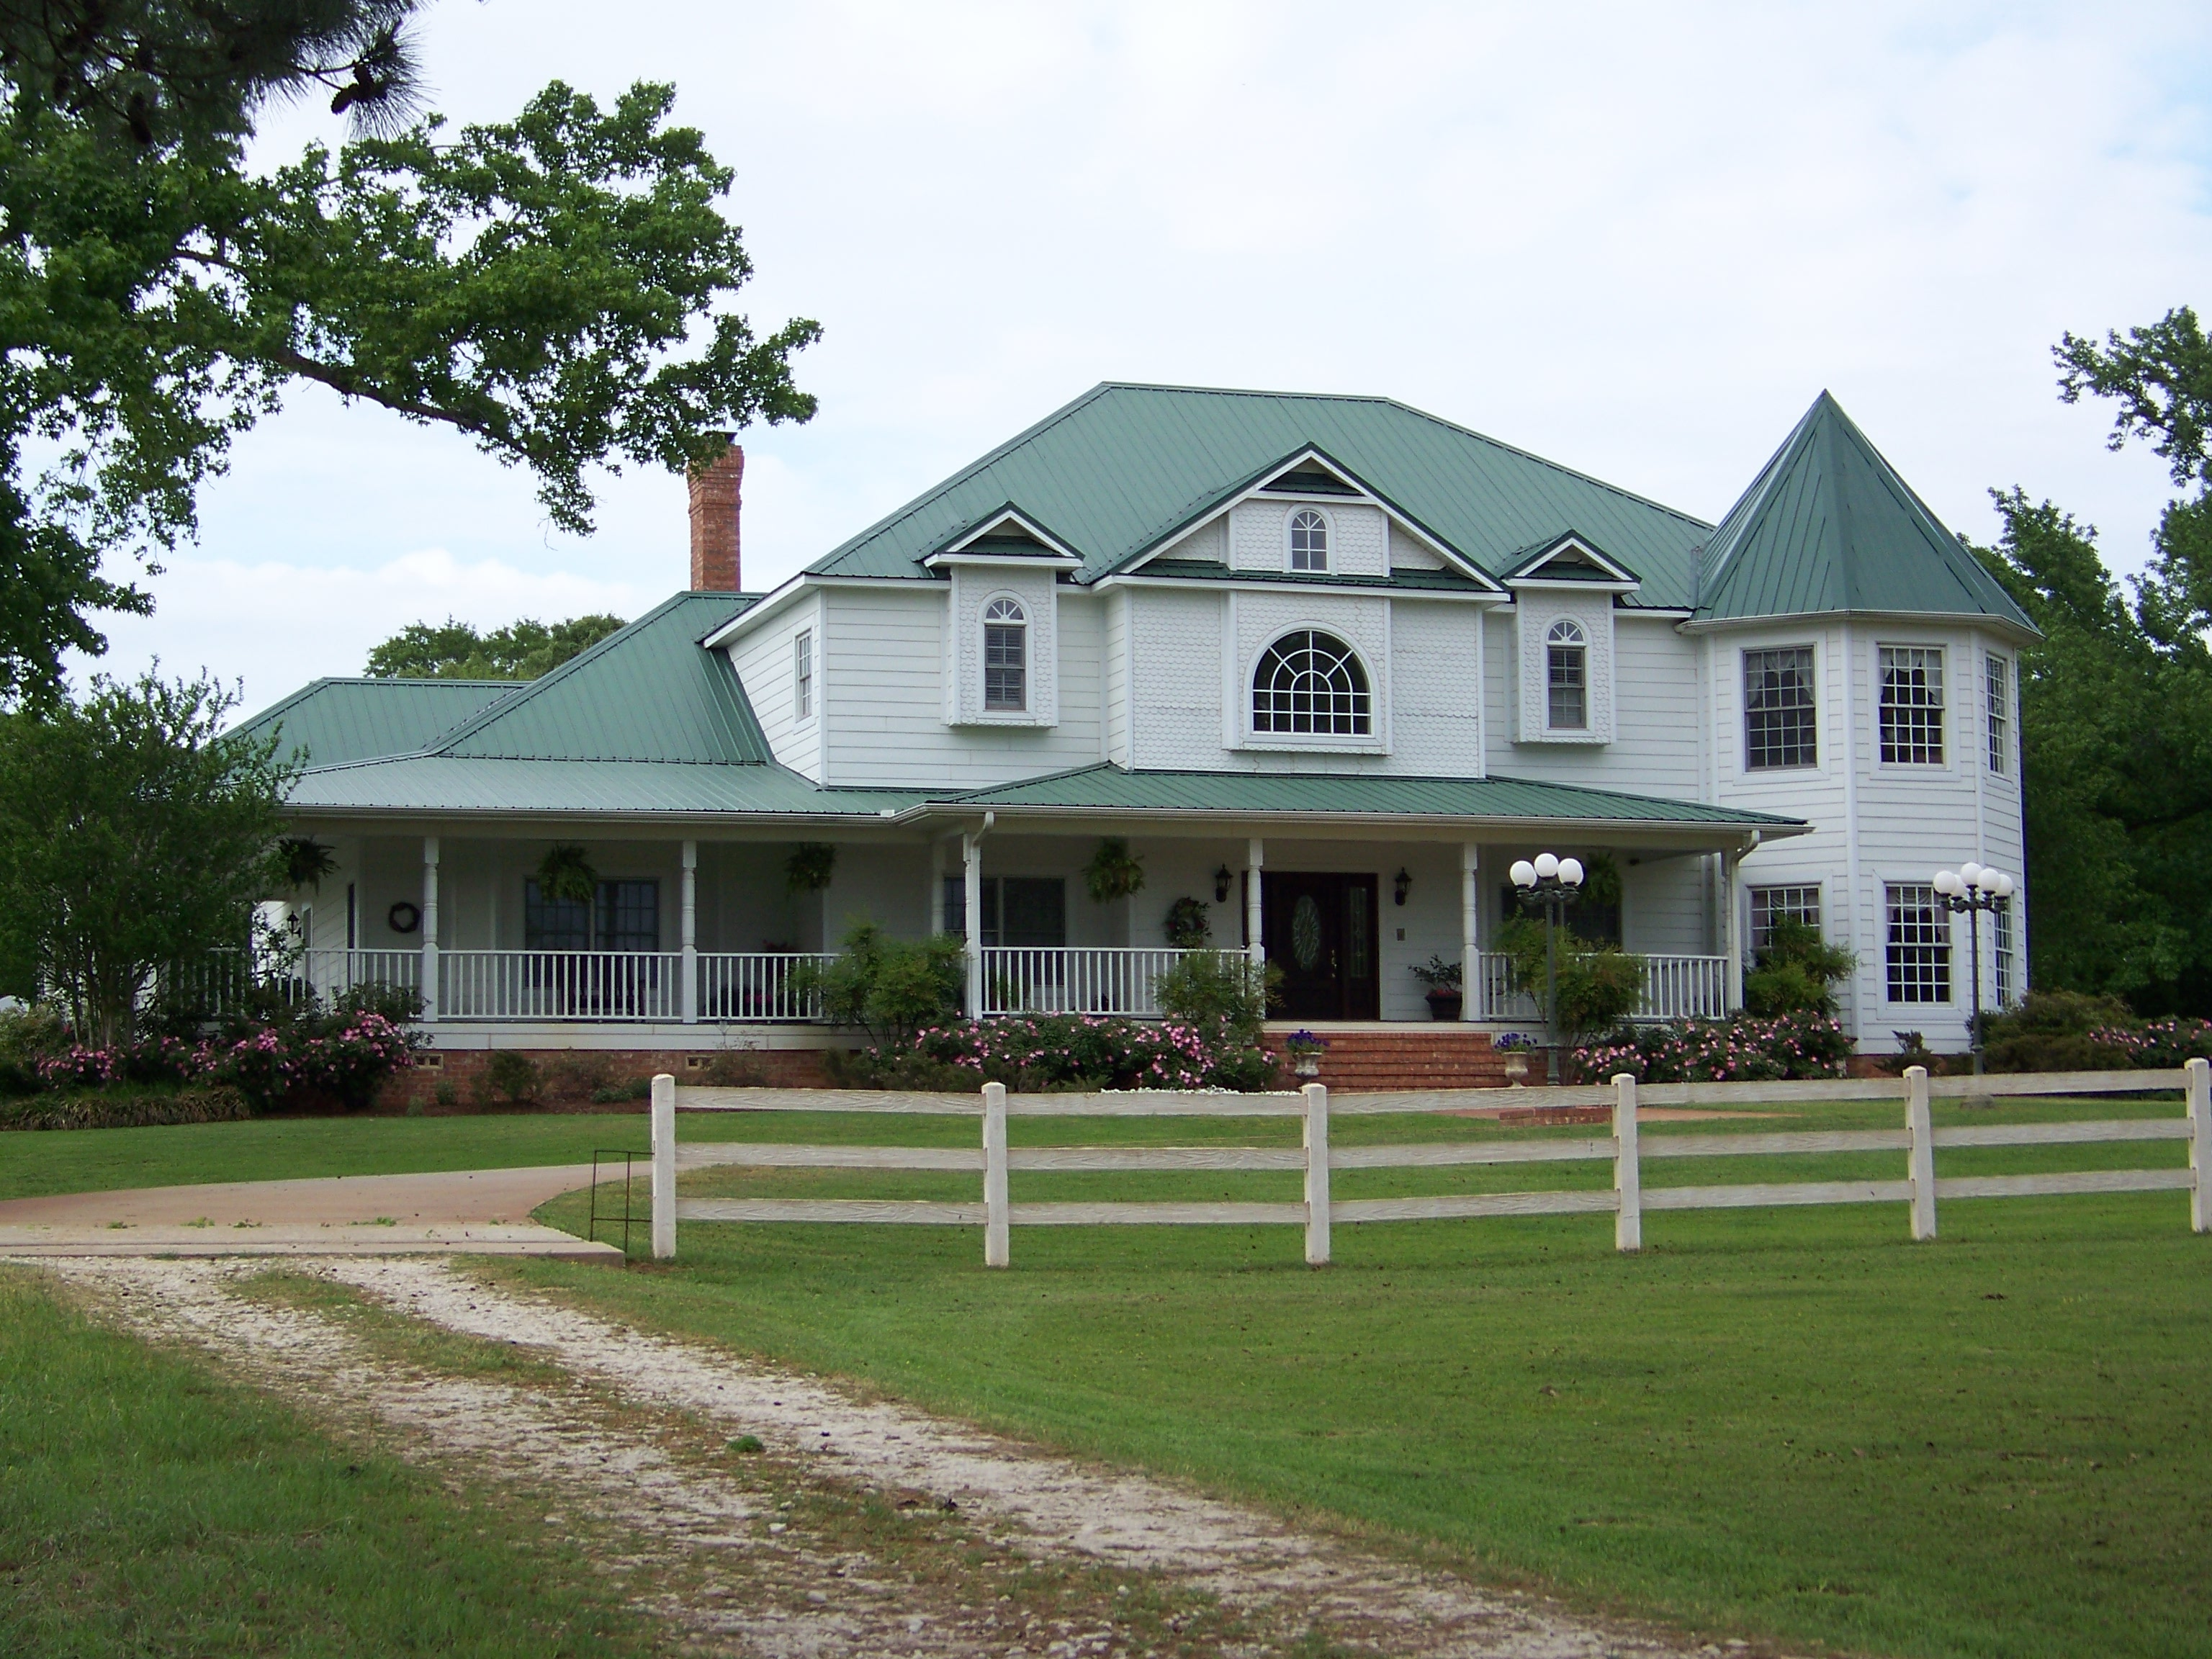 east texas land for sale ranch for sale east texas east texas house for sale